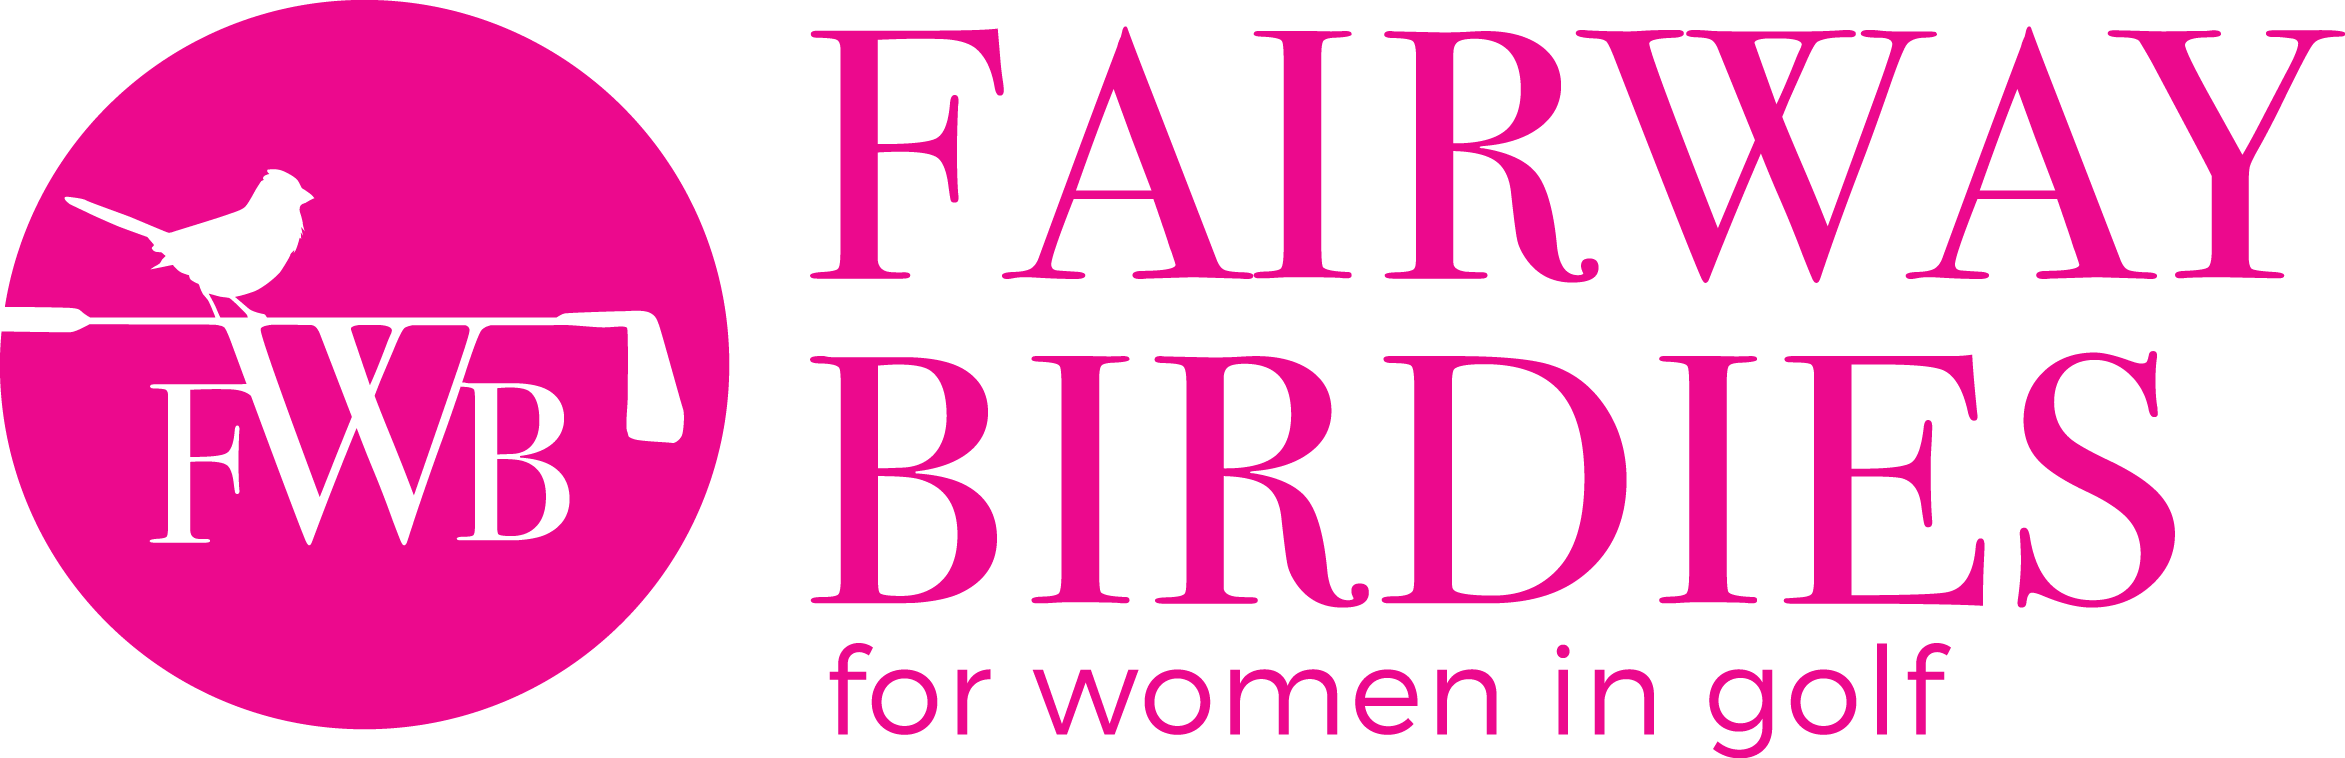 Fairway Birdies – For Women in Golf